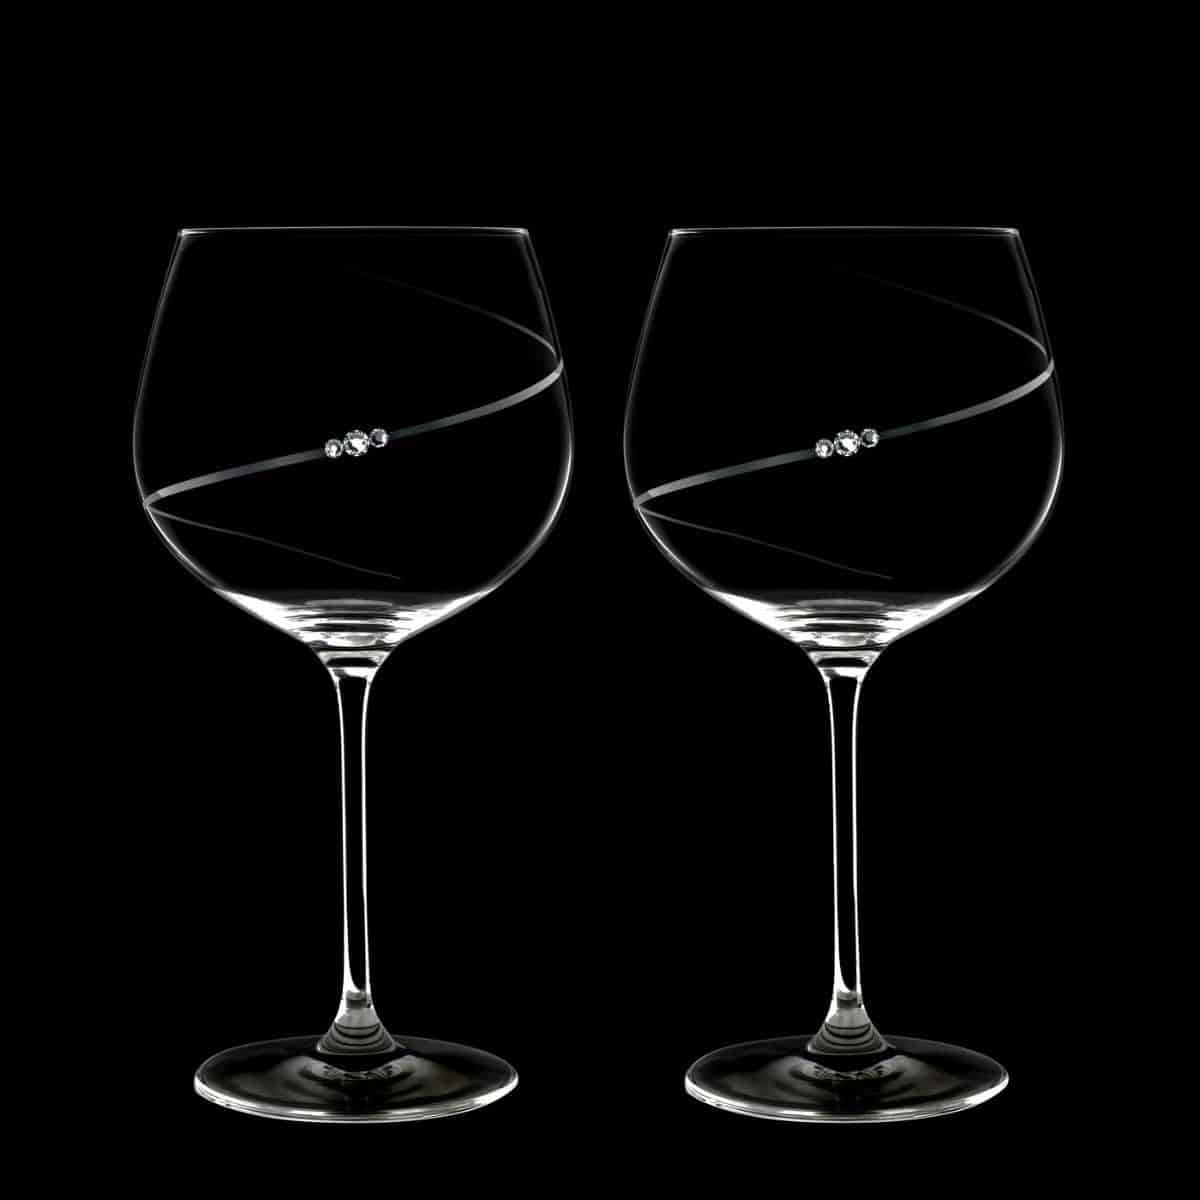 Gift ideas for the bride; wine glass set